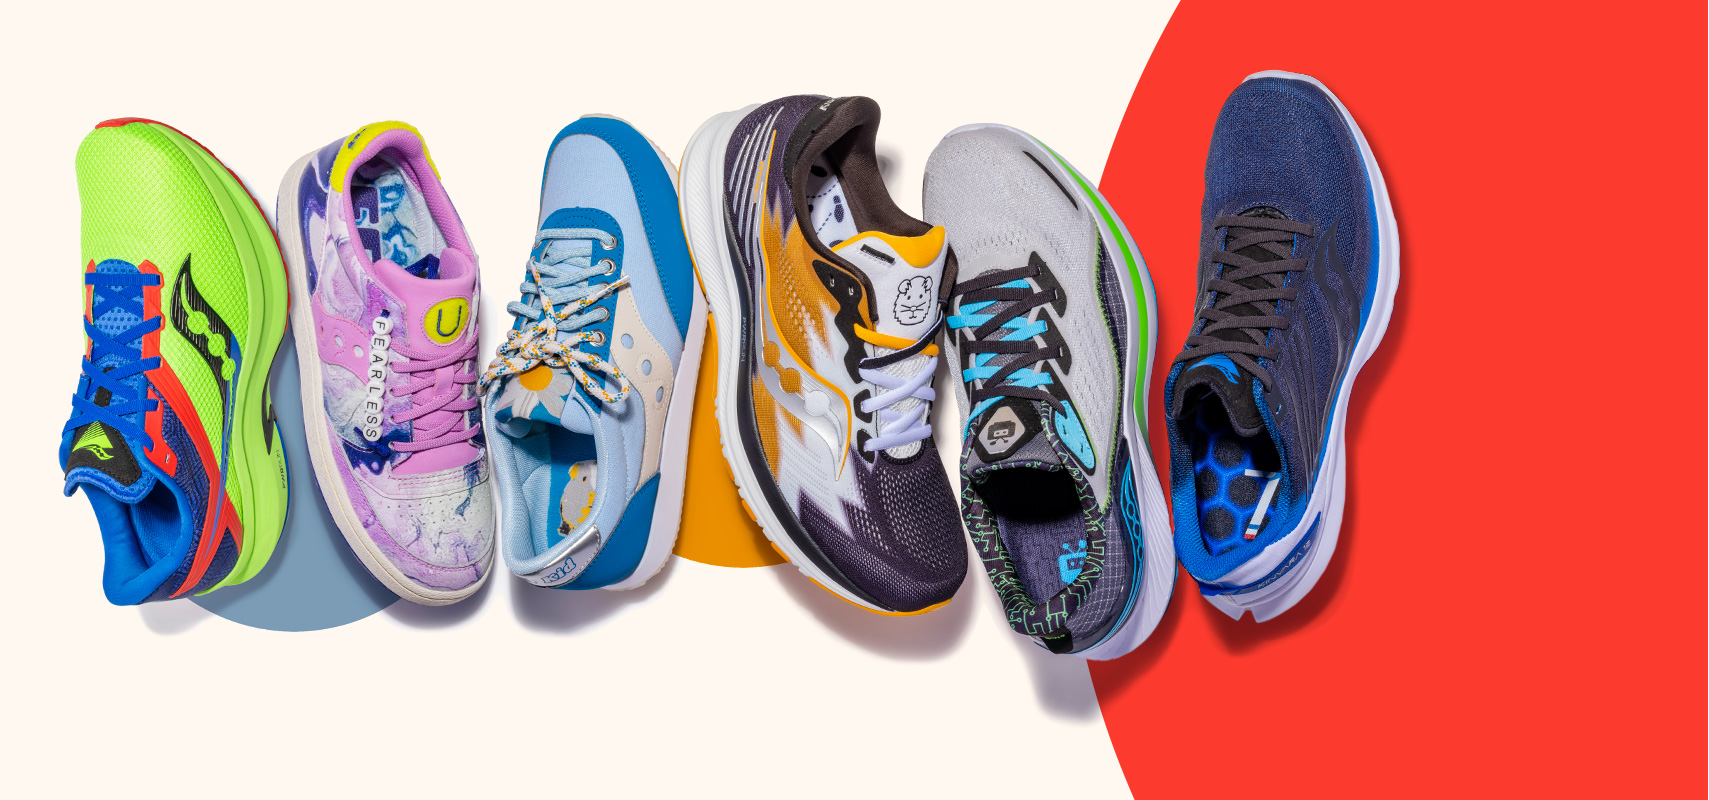 Saucony Collection of running shoes made with heart and soul.